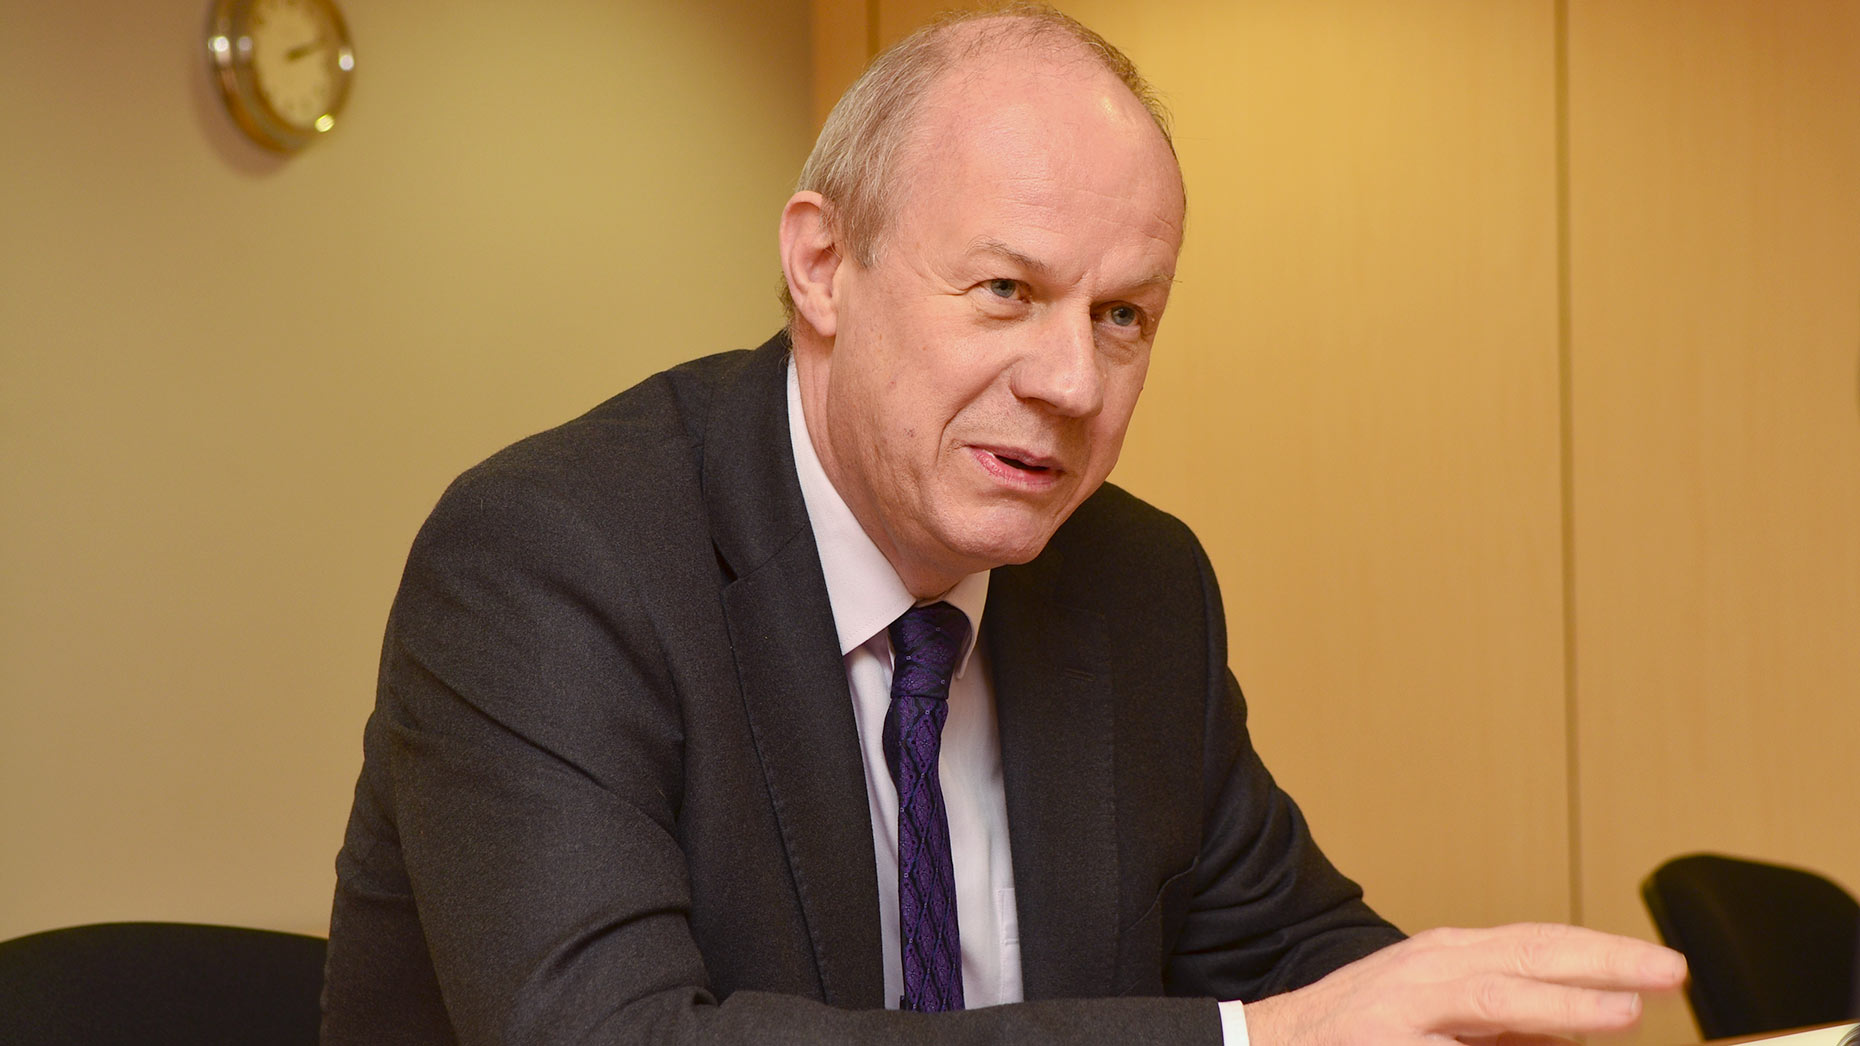 Minister of State for Police and Criminal Justice Damian Green speaking with The Lincolnite. Photo: Steve Smailes for The Lincolnite